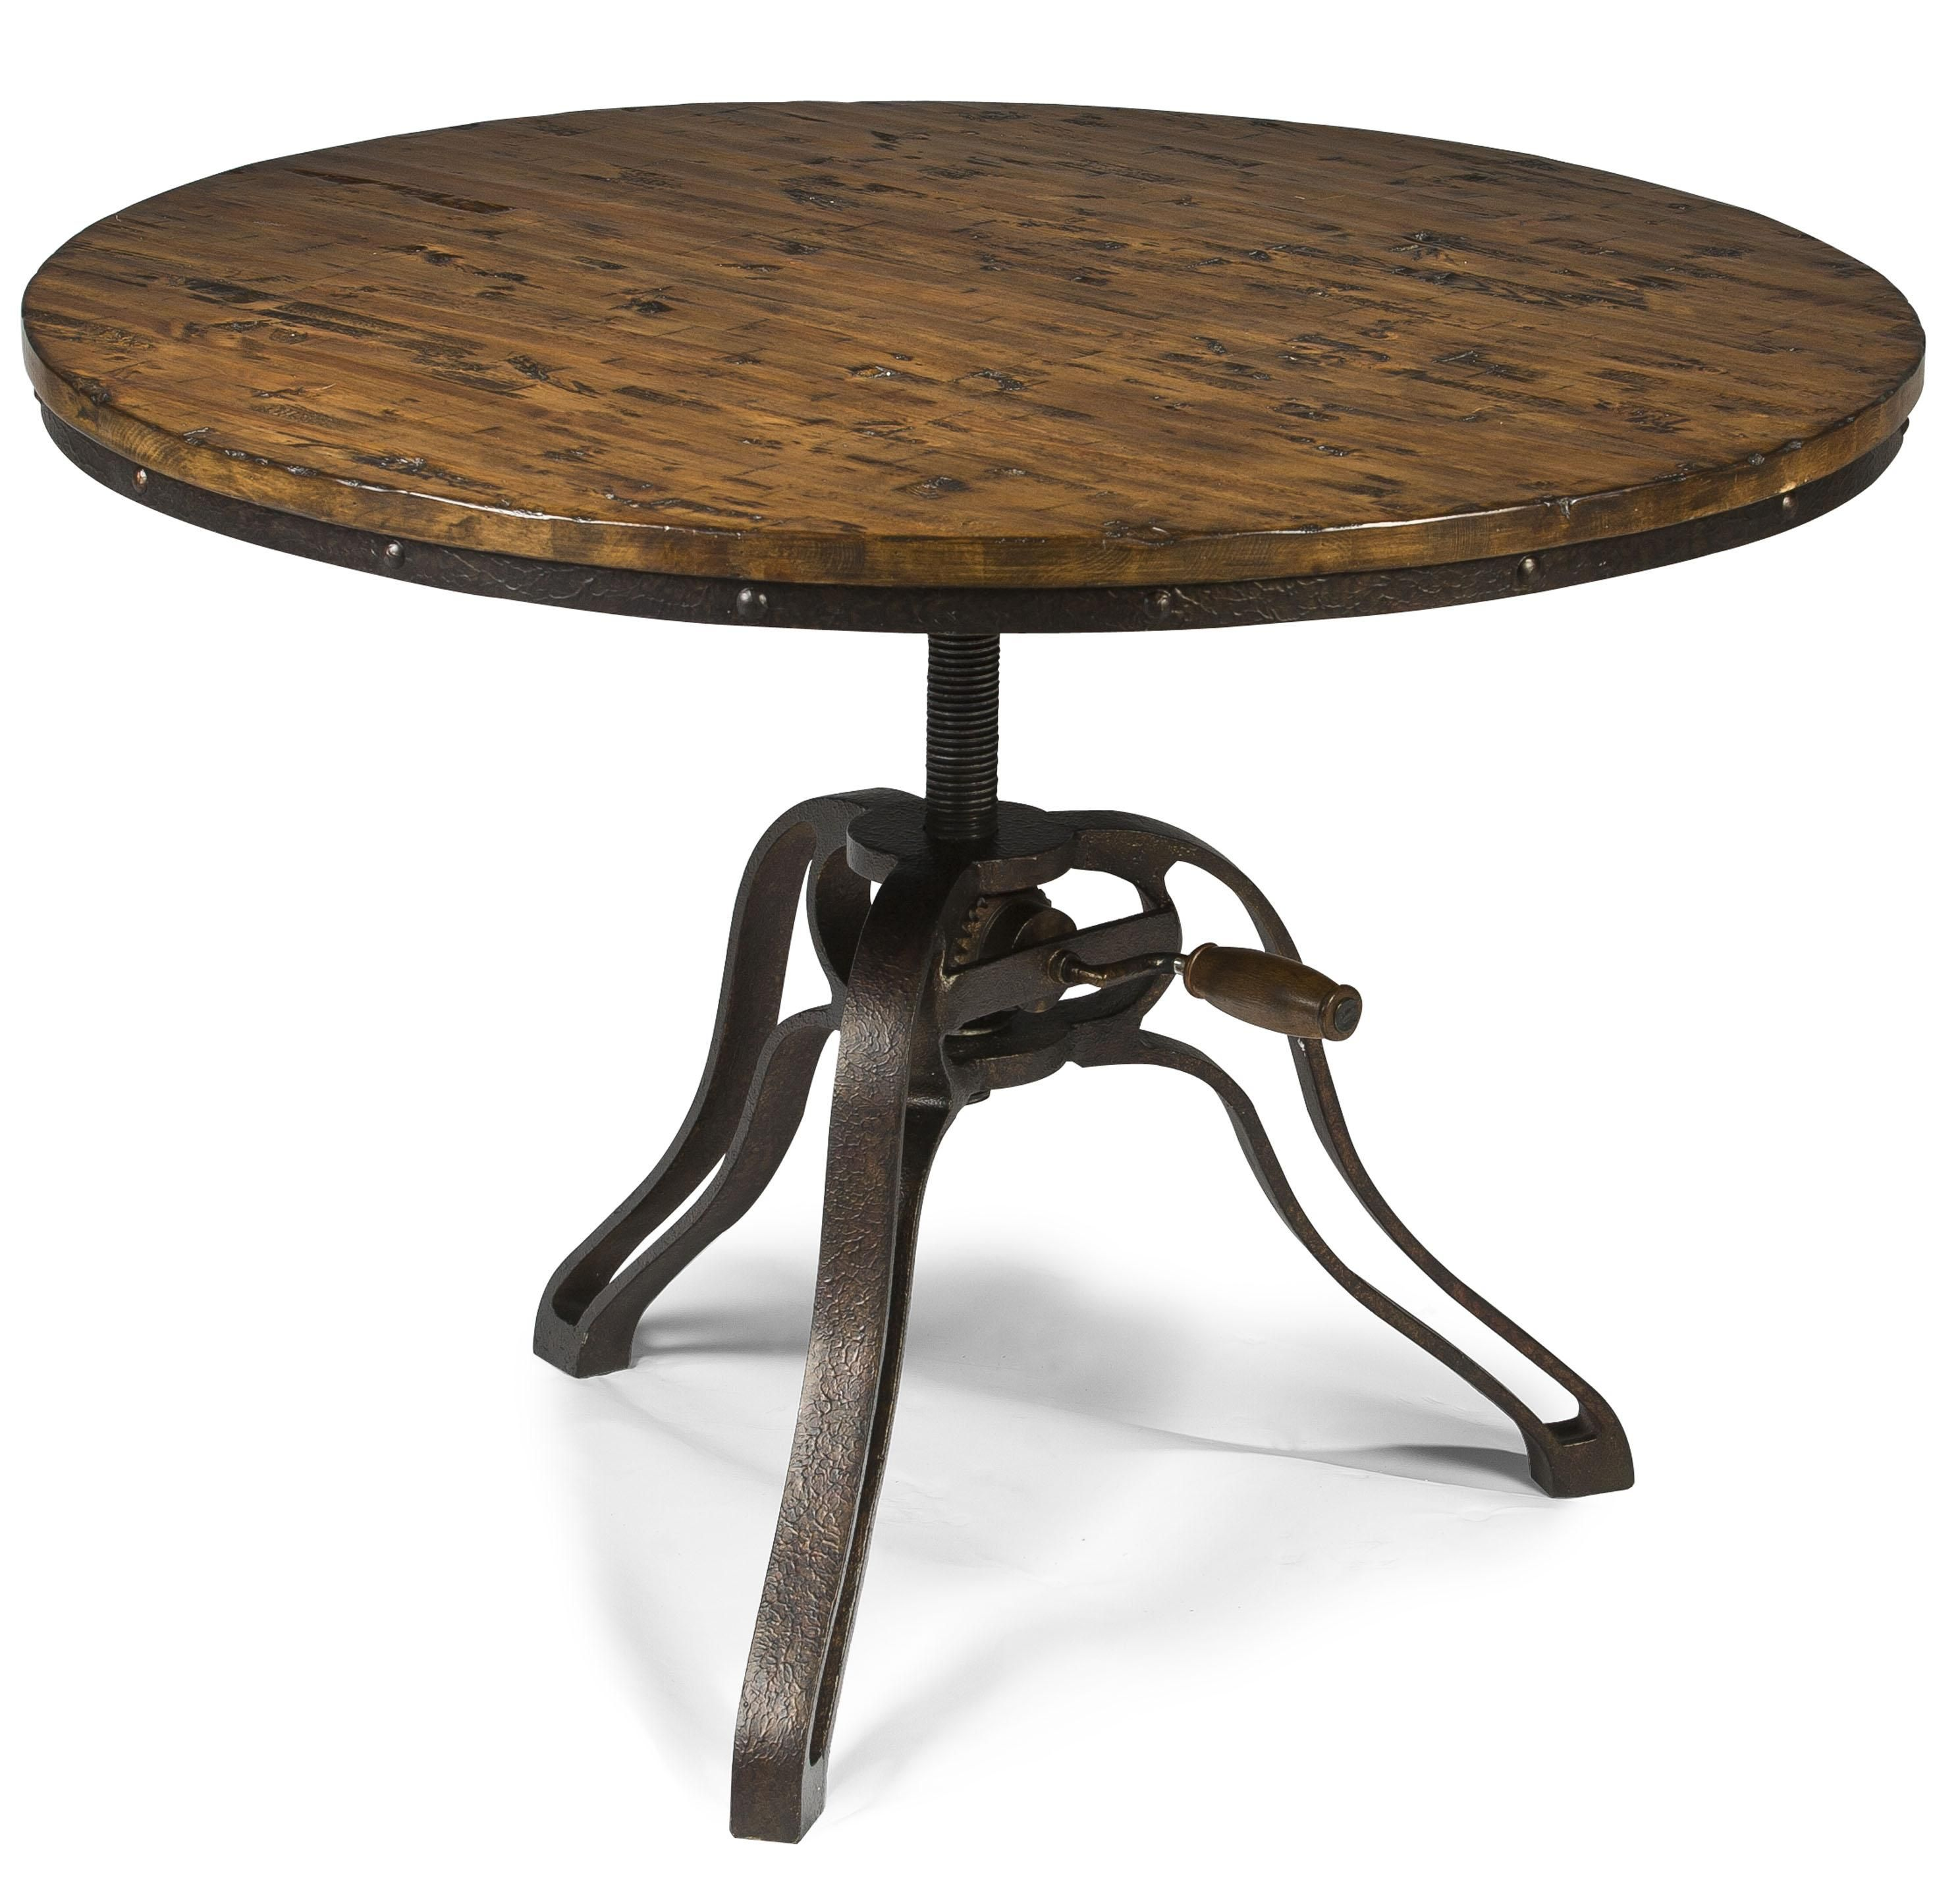 Industrial Style Round Cocktail Table With Adjustable Height By Antique Coffee Tables Round Cocktail Tables Stylish Coffee Table